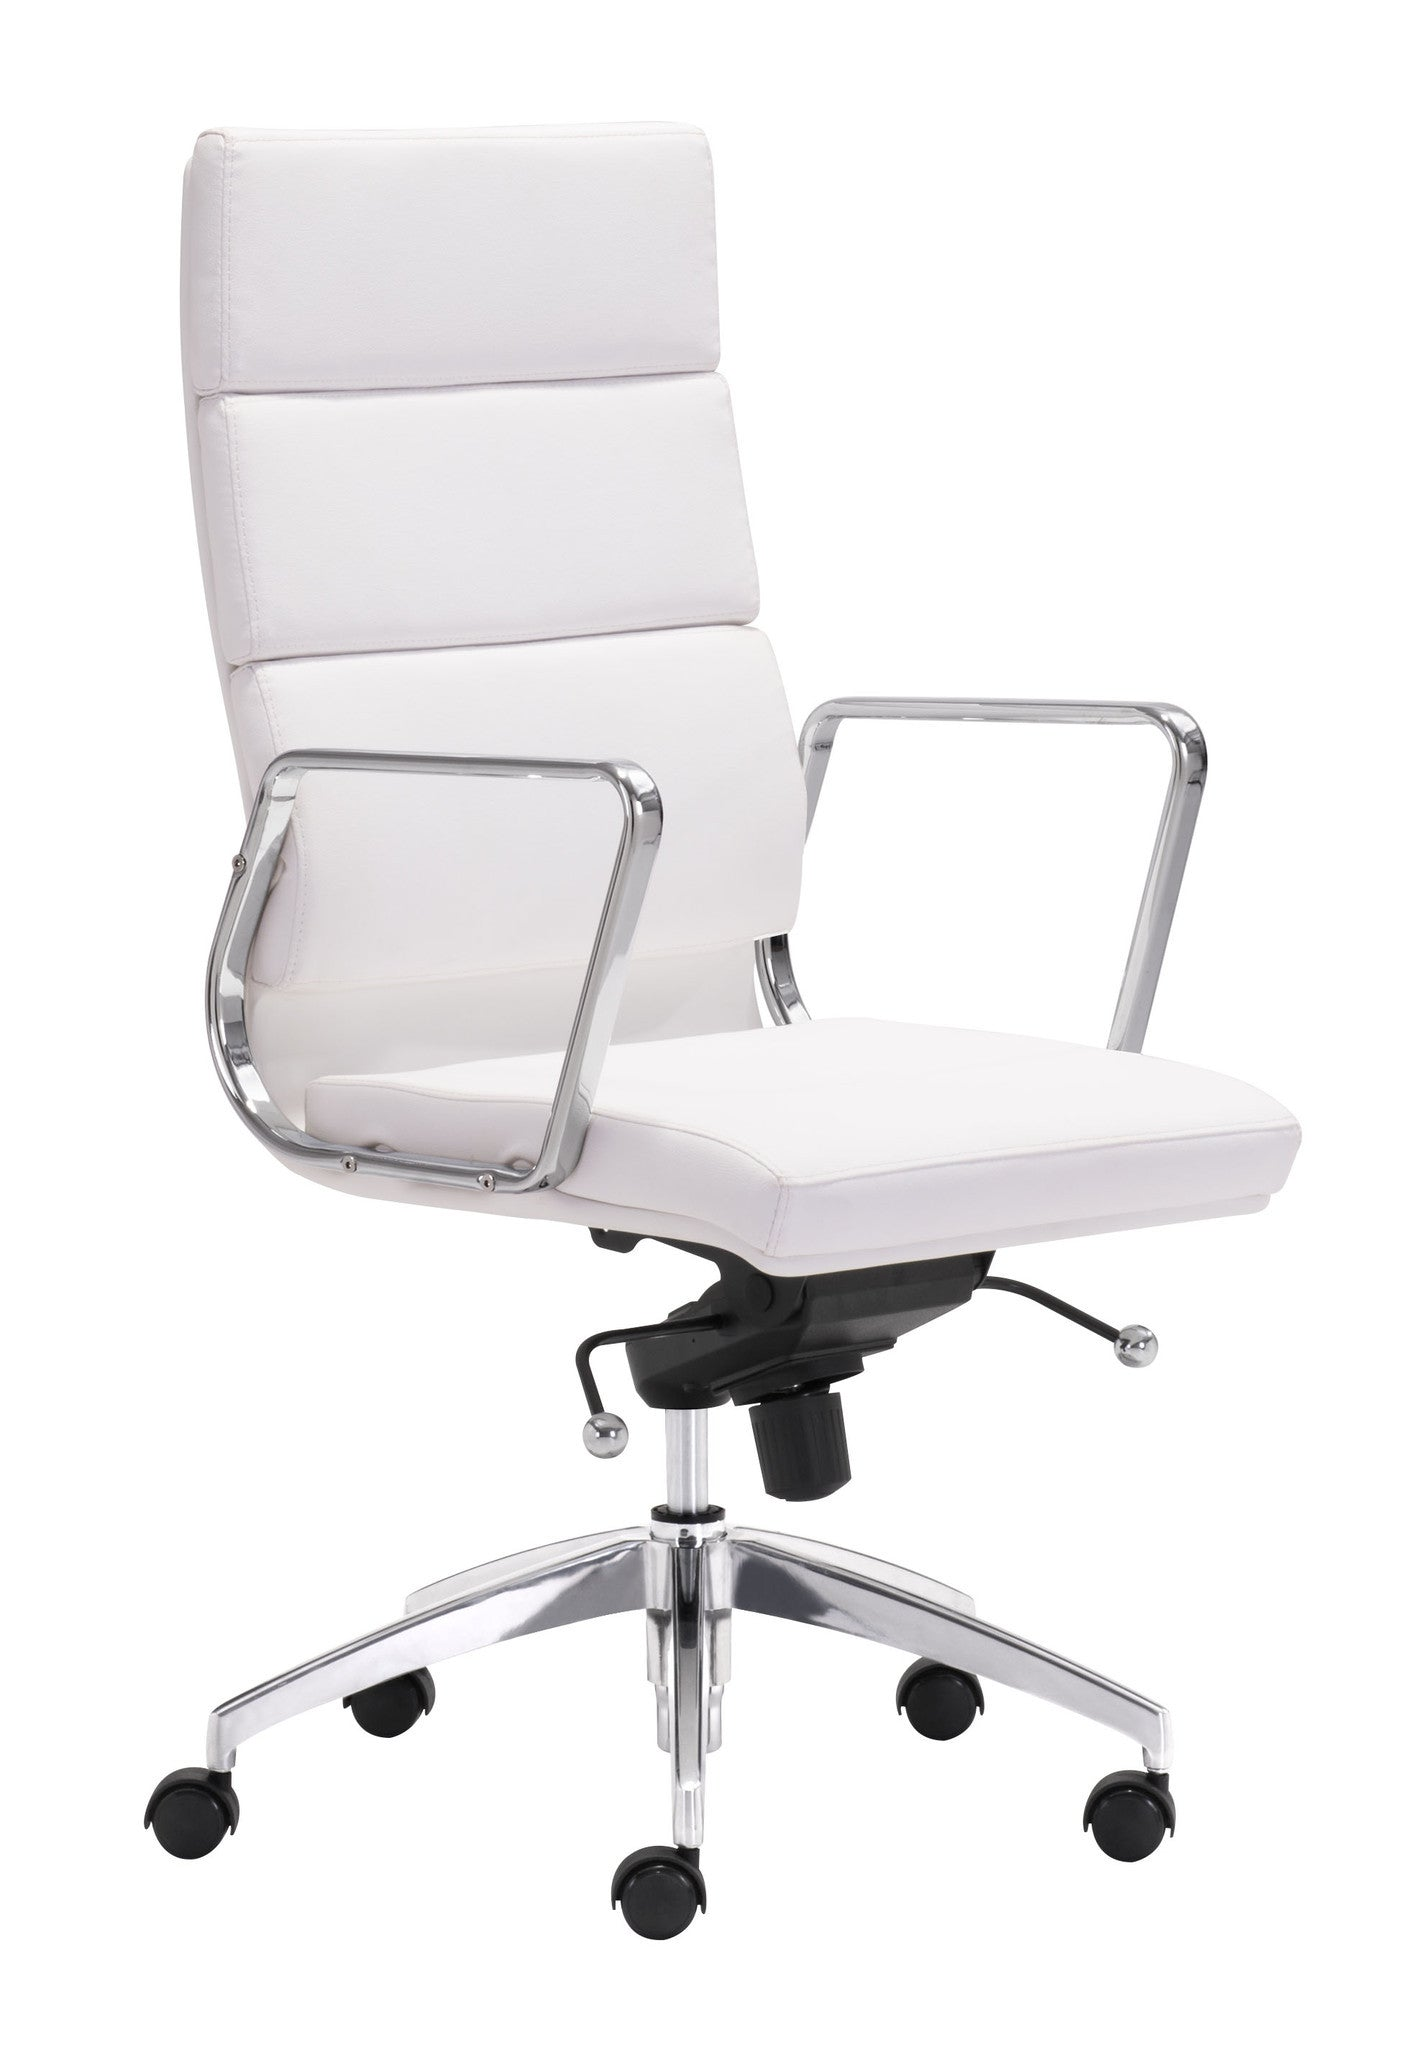 engineer high back office chair in white leatherette with chrome frame